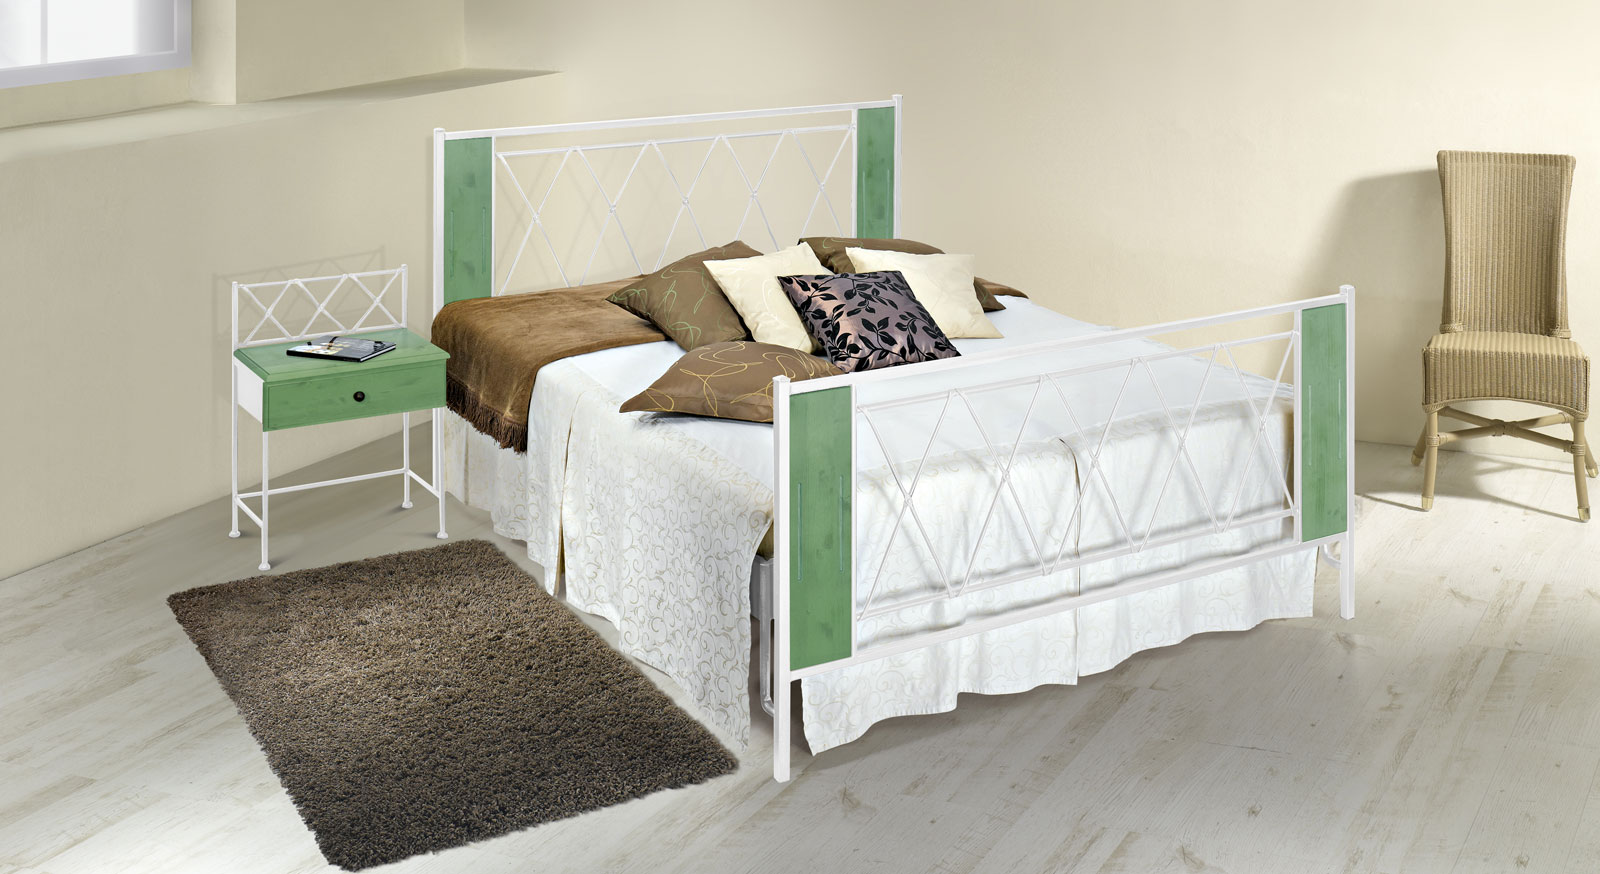 bett aus metallgestell das beste aus wohndesign und m bel inspiration. Black Bedroom Furniture Sets. Home Design Ideas